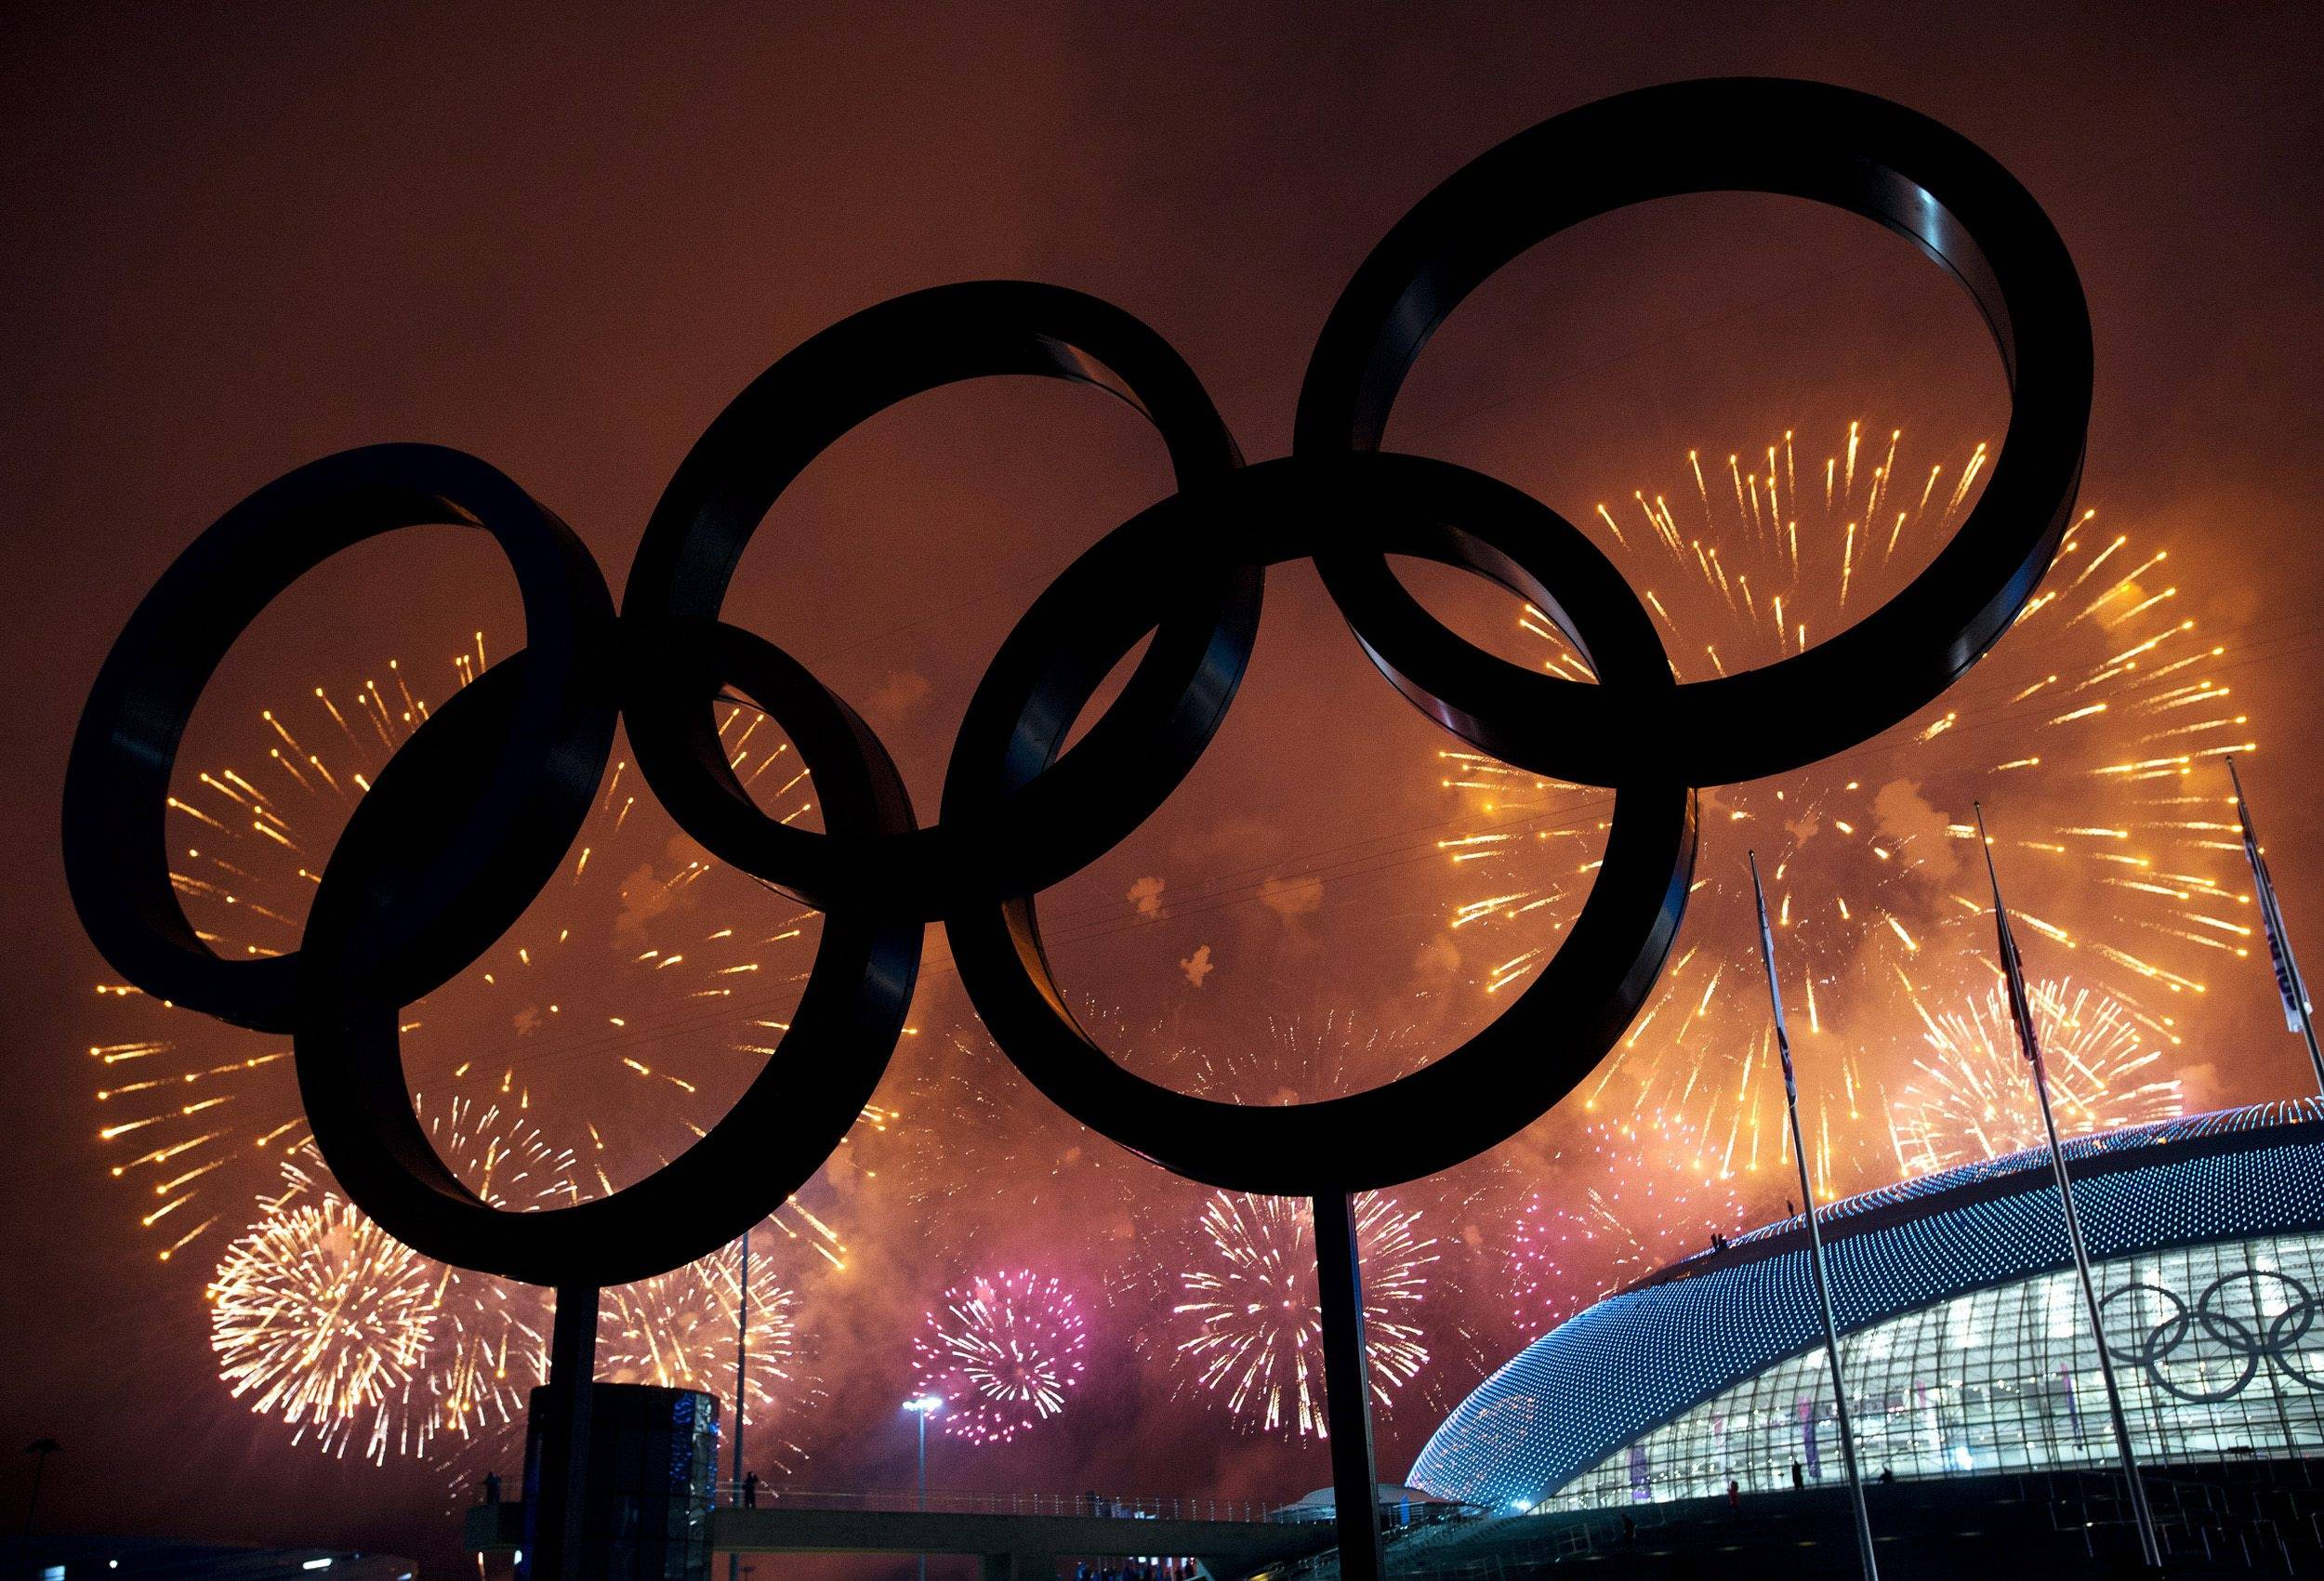 The Olympic Rings are silhouetted as fireworks light up the sky during the closing ceremonies at the 2014 Sochi Winter Olympics on Sunday, Feb. 23, 2014, in Sochi, Russia.